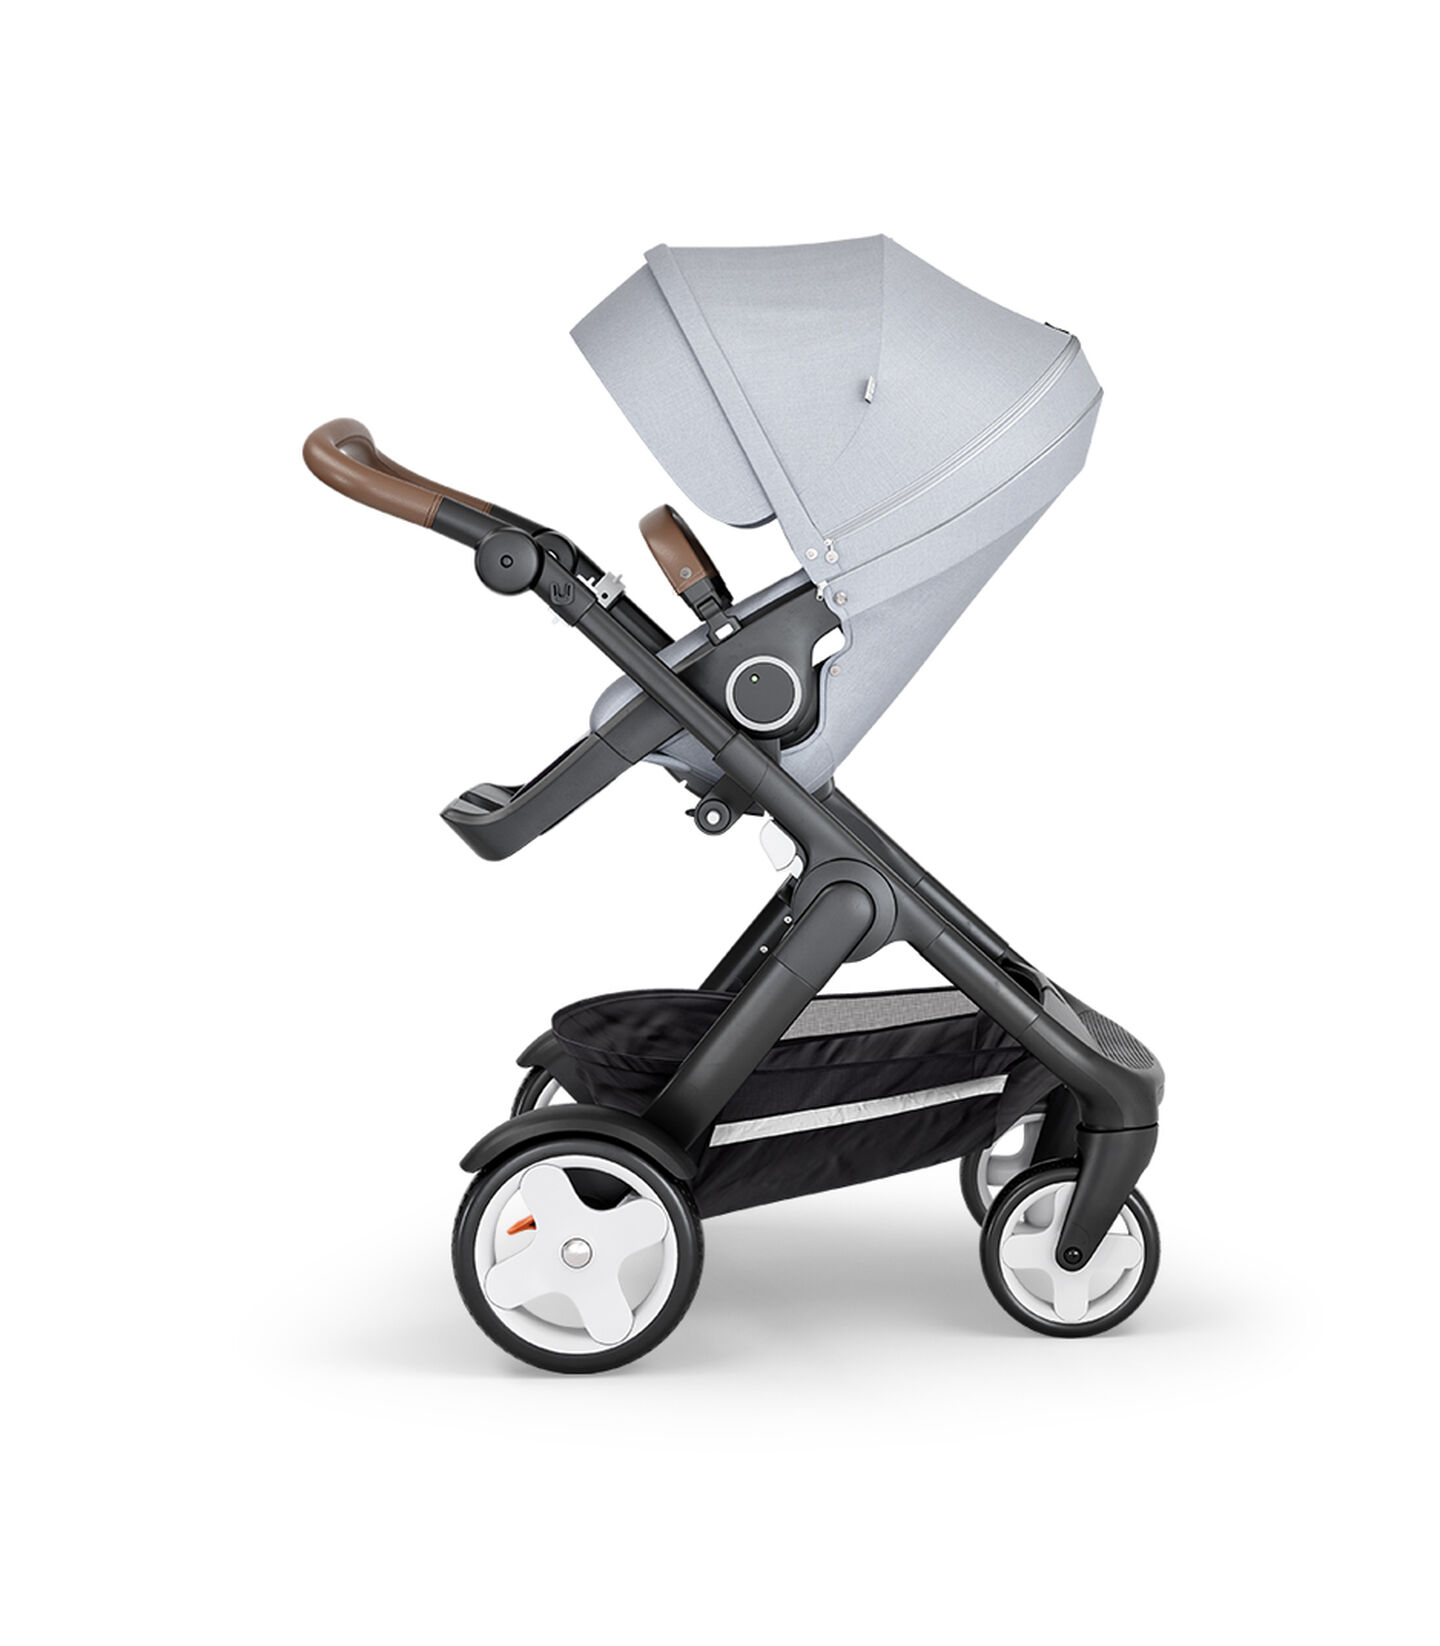 Stokke® Trailz™ with Black Chassis, Brown Leatherette and Classic Wheels. Stokke® Stroller Seat, Grey Melange. view 2